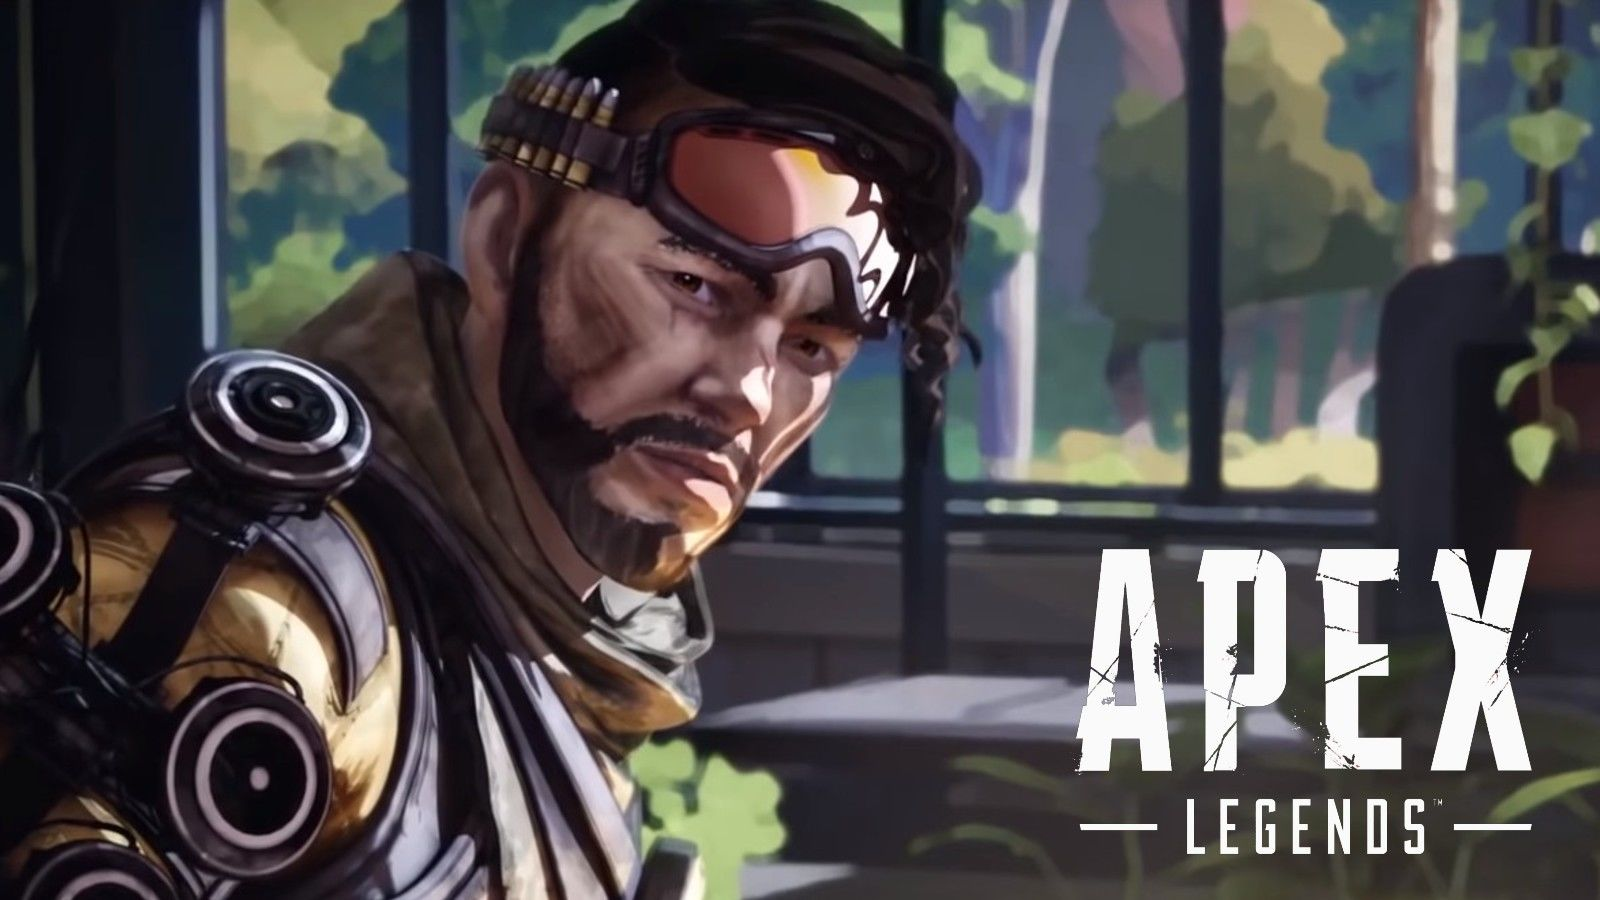 Bug Apex Legends